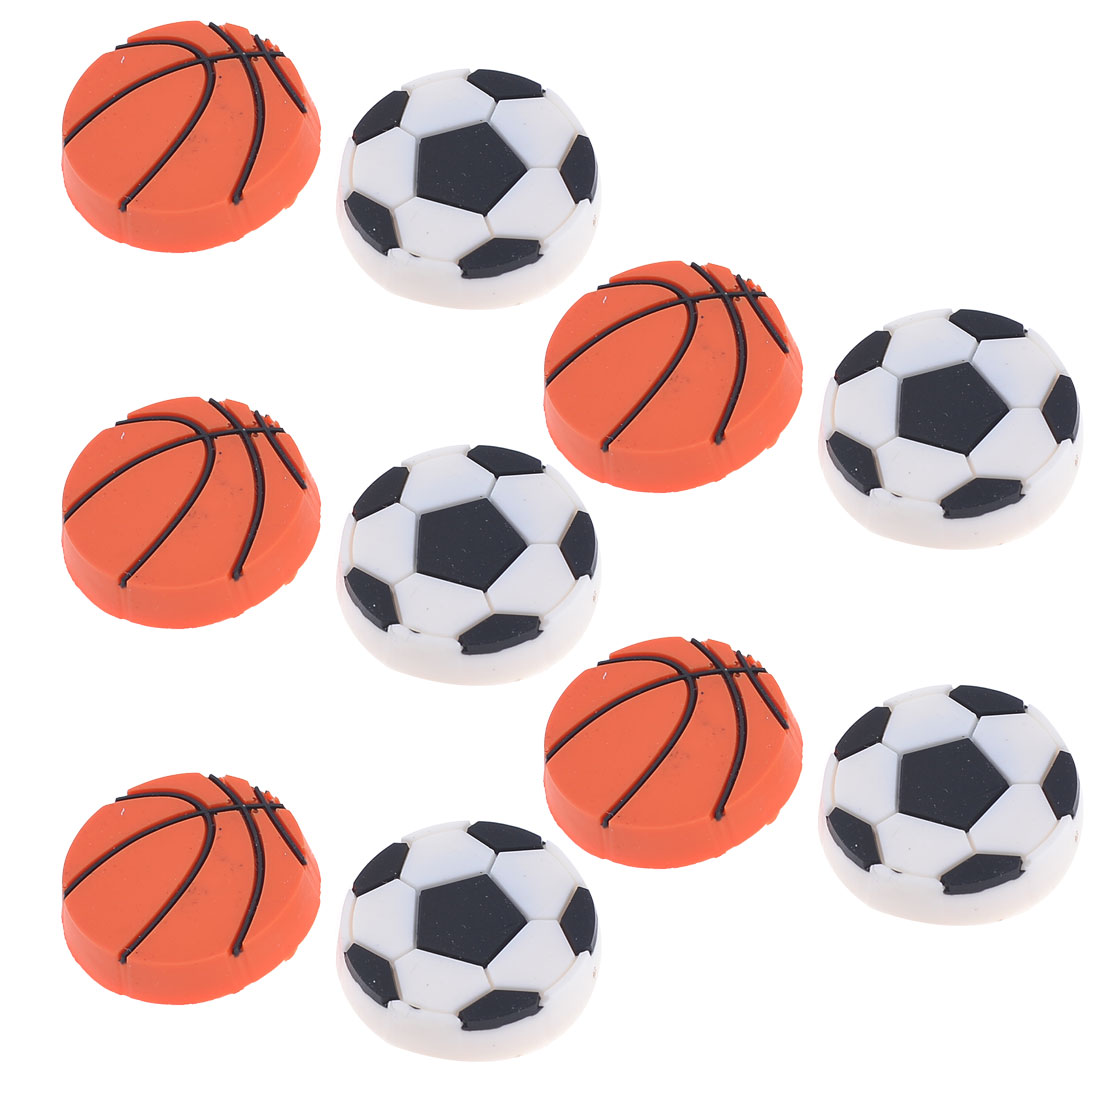 10 Pcs Plastic Basketball Football Design File Closet Magnets